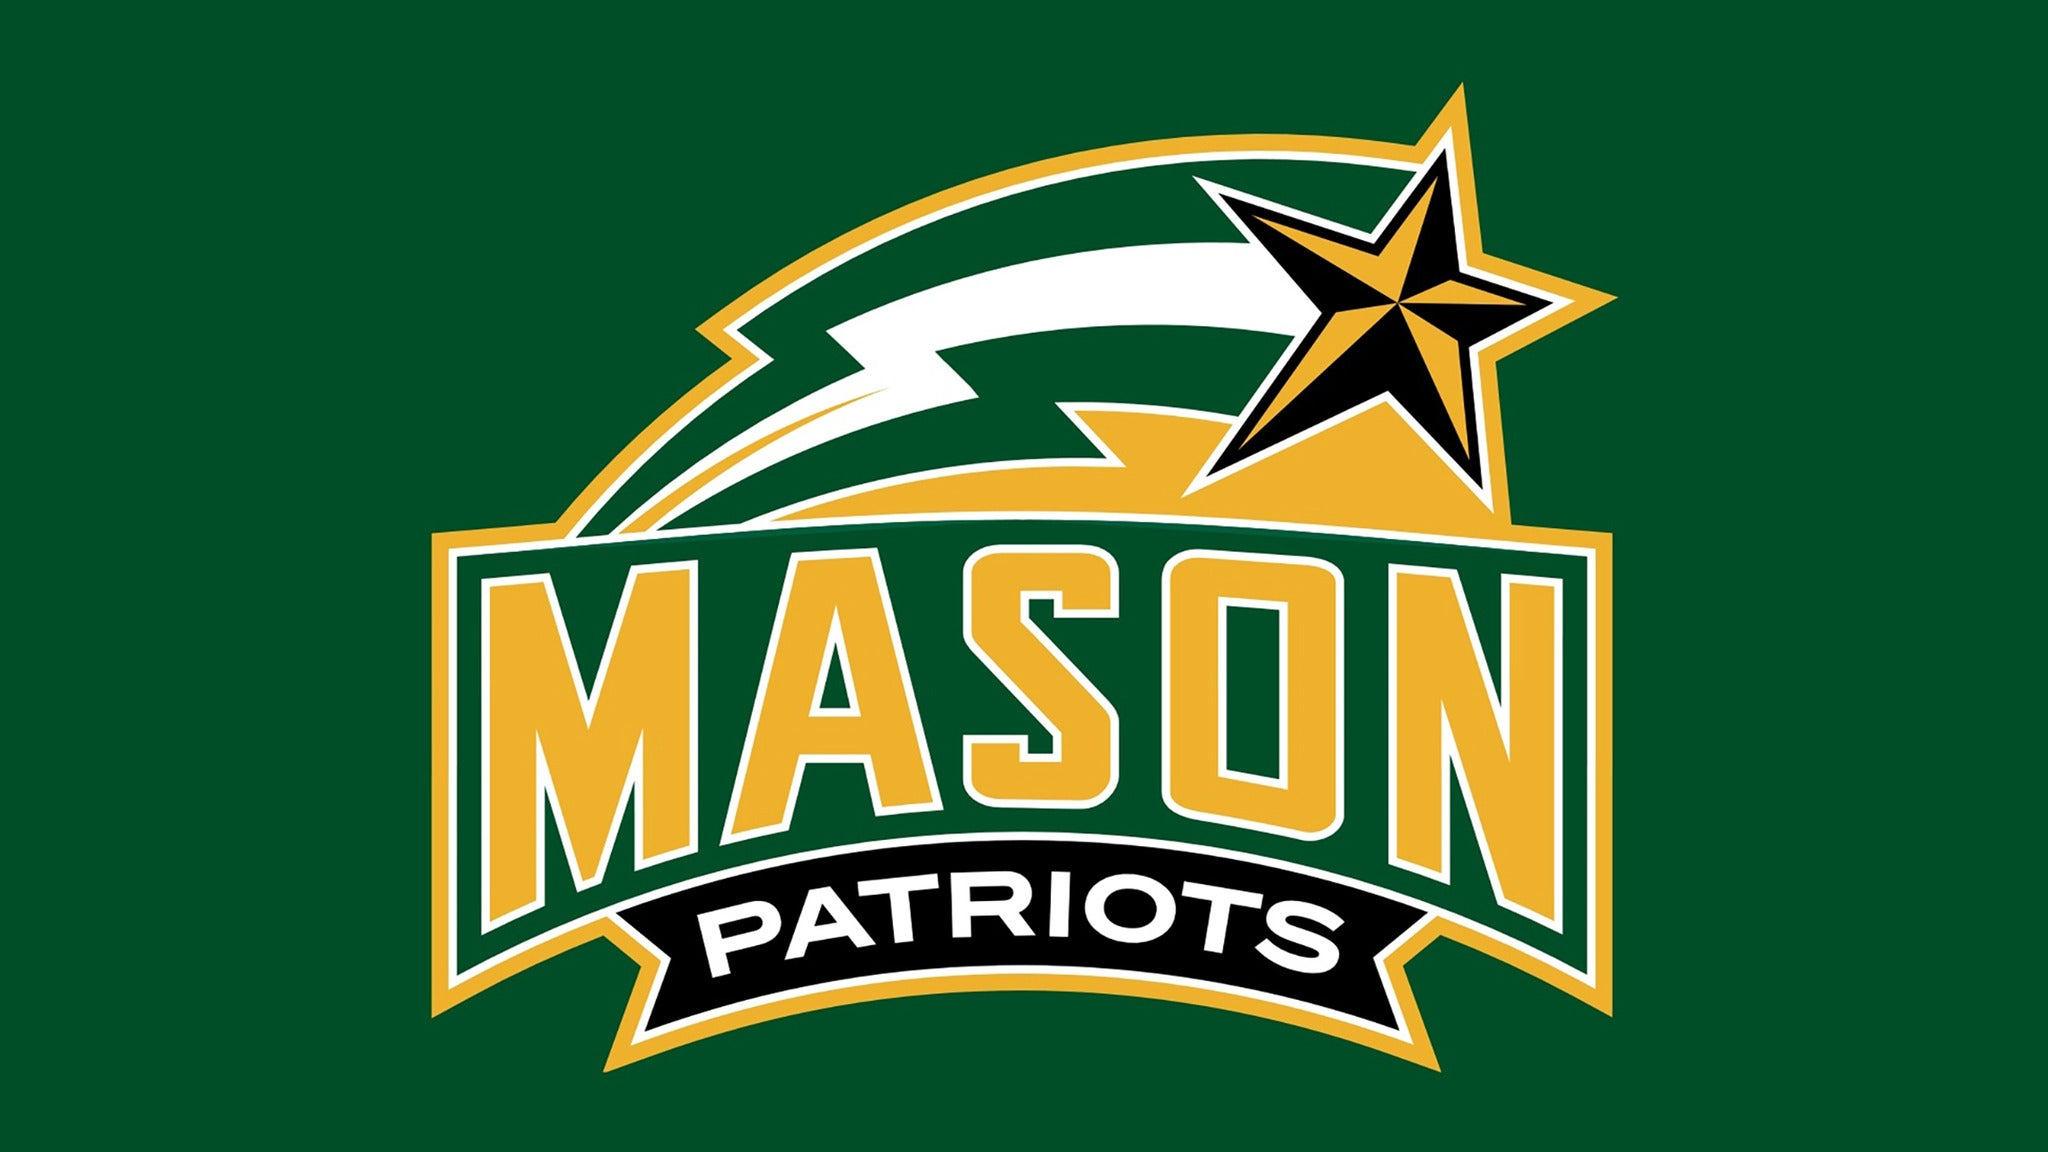 George Mason University Patriots Womens Basketball vs. Virginia Tech Hokies Womens Basketball